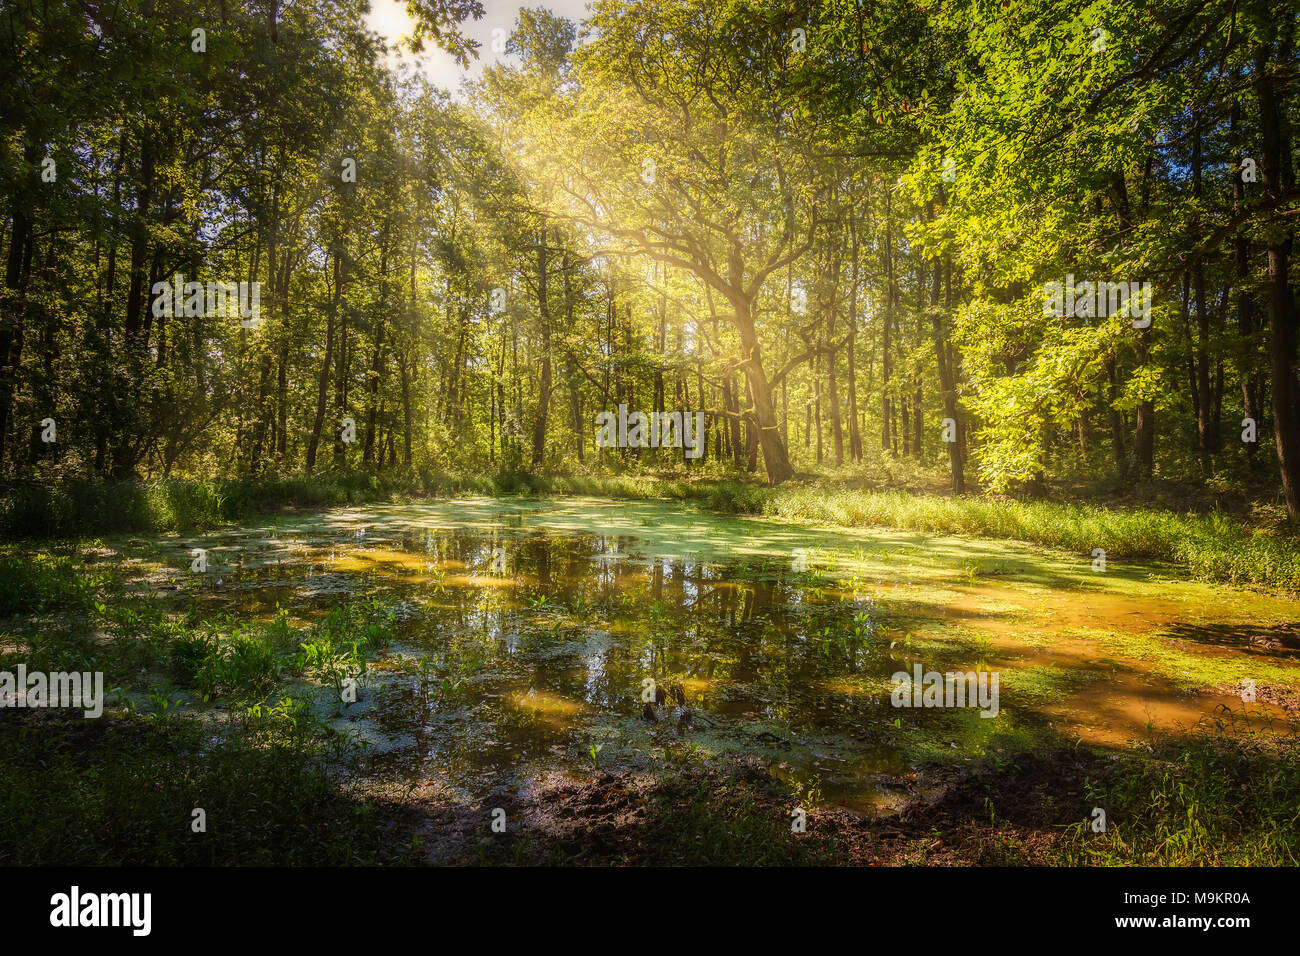 Wallow in the forest in a sunny day Stock Photo